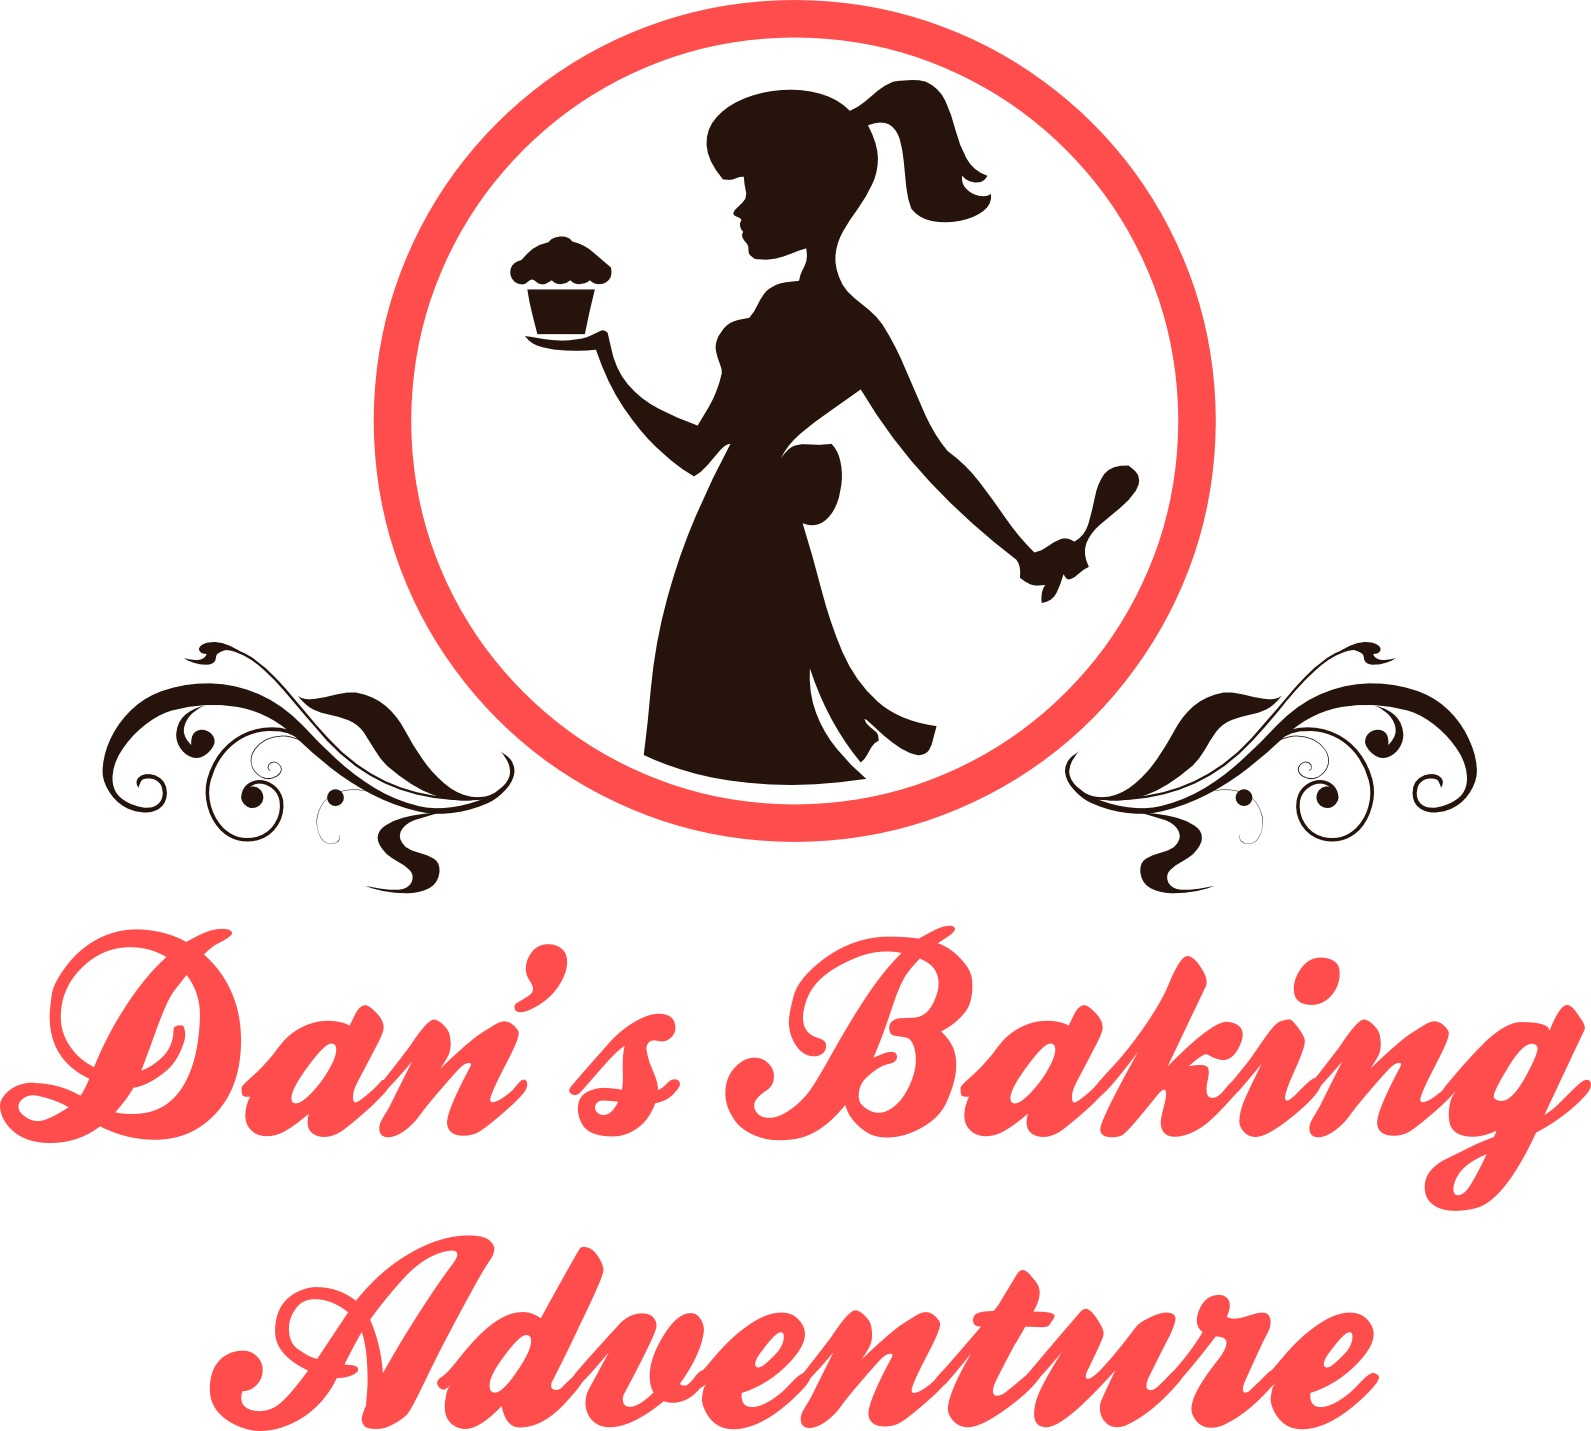 Dan's Baking Adventure